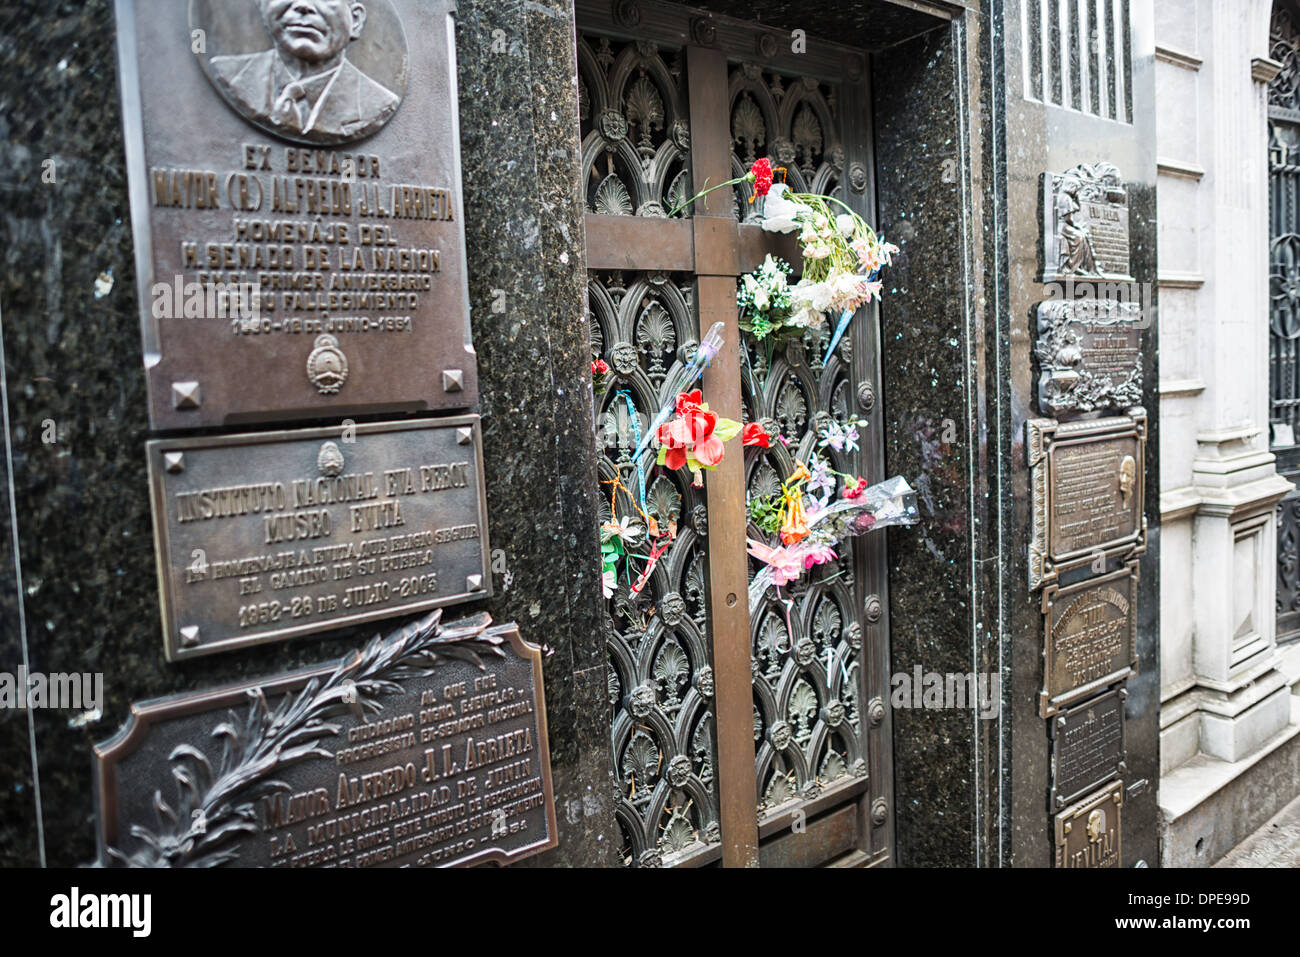 BUENOS AIRES, Argentina - Flowers left by visitors adorn the gravesite of Eva Peron, a former first lady of Argentina and beloved national figure. La Recoleta Cemetery is a famous cemetery in the Recoleta neighborhood of Buenos Aires and is famous for being the burial sites of Eva Peron, Argentinian presidents, and other notables. The cemetery features above-ground gravesites and crypts and is organized into a series of streets and boulevards. - Stock Image